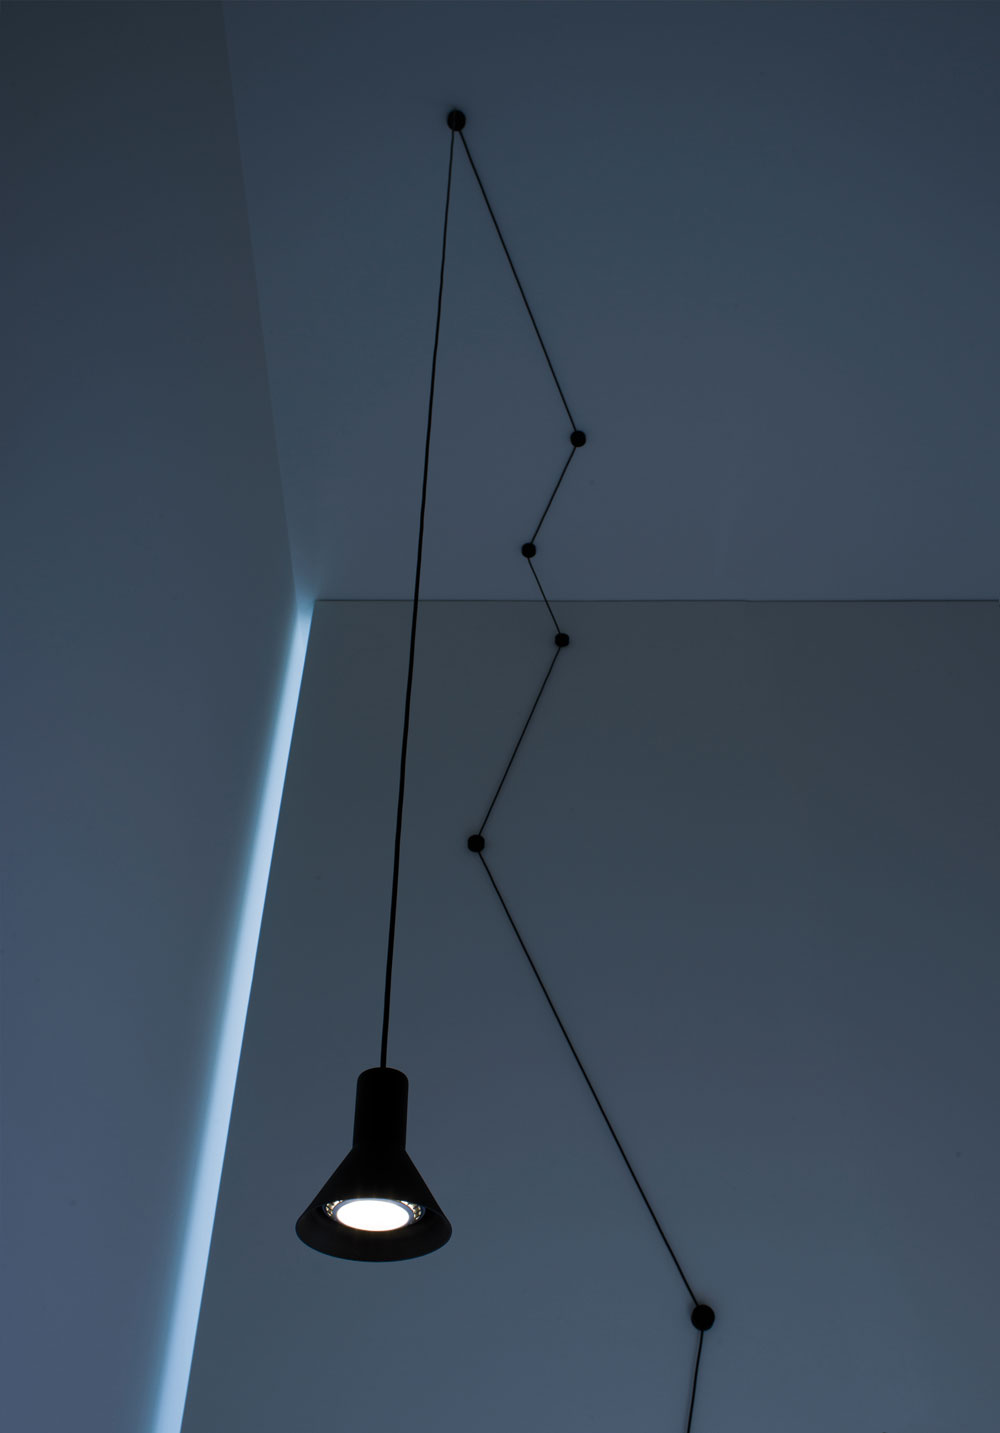 N-EURO Suspension Lamp by Beppe Merlano for Davide Groppi | Yellowtrace.